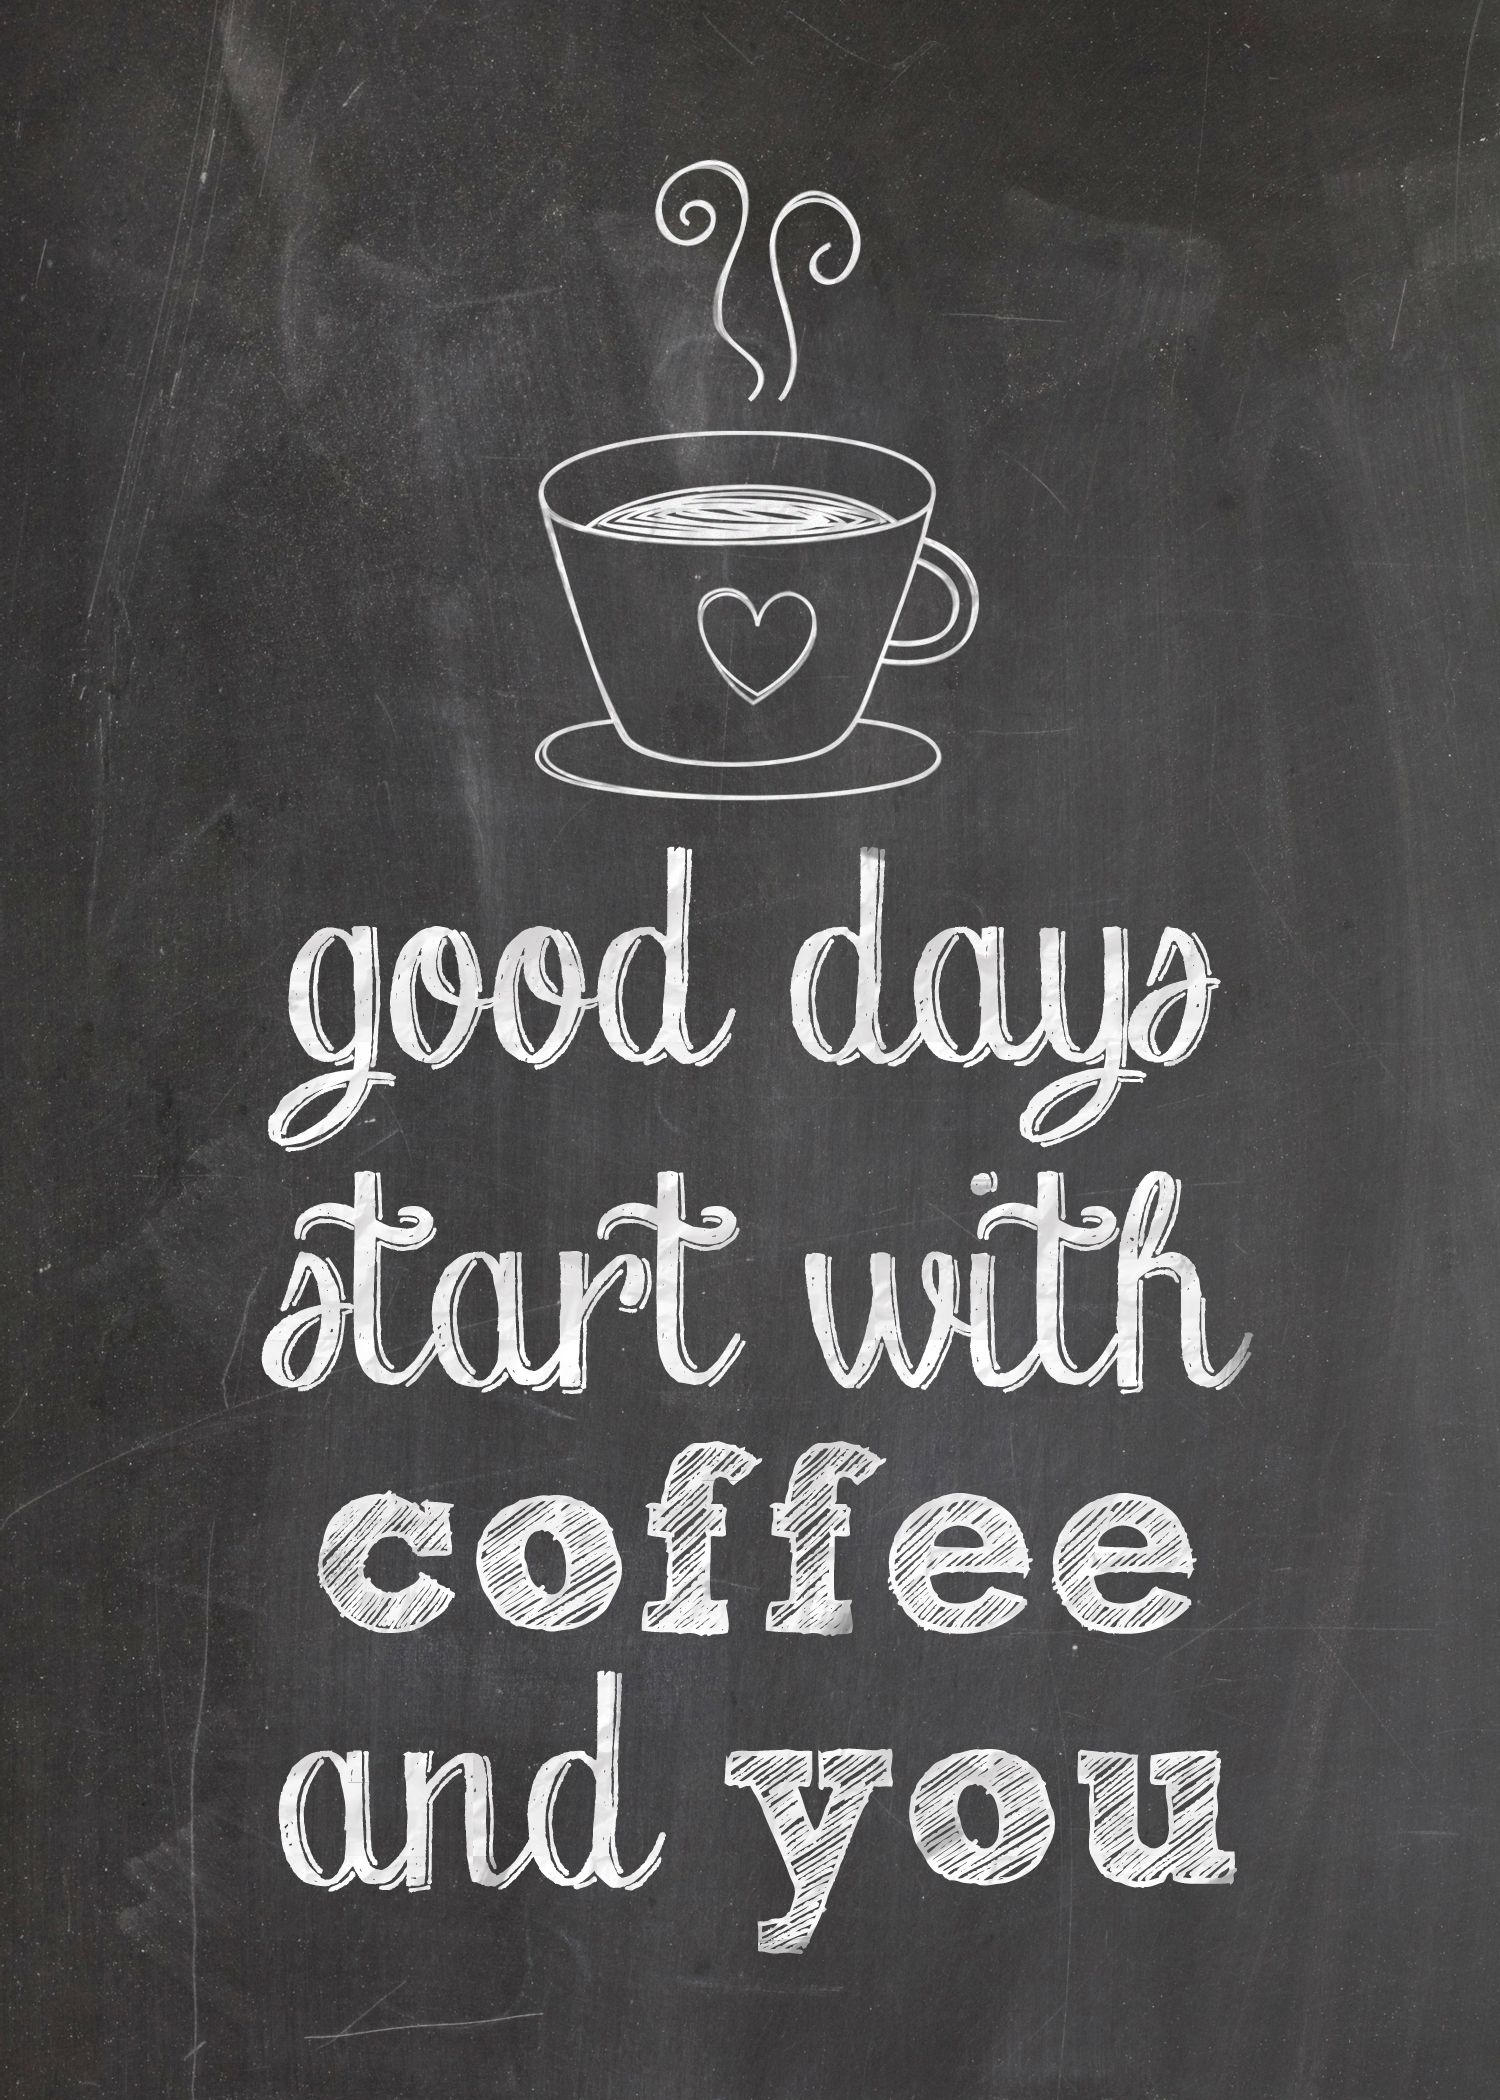 Free Printable For Coffee Lovers Good Days Start With Coffee And You Kaffee Liebe Kaffee Am Morgen Kaffee Spruche